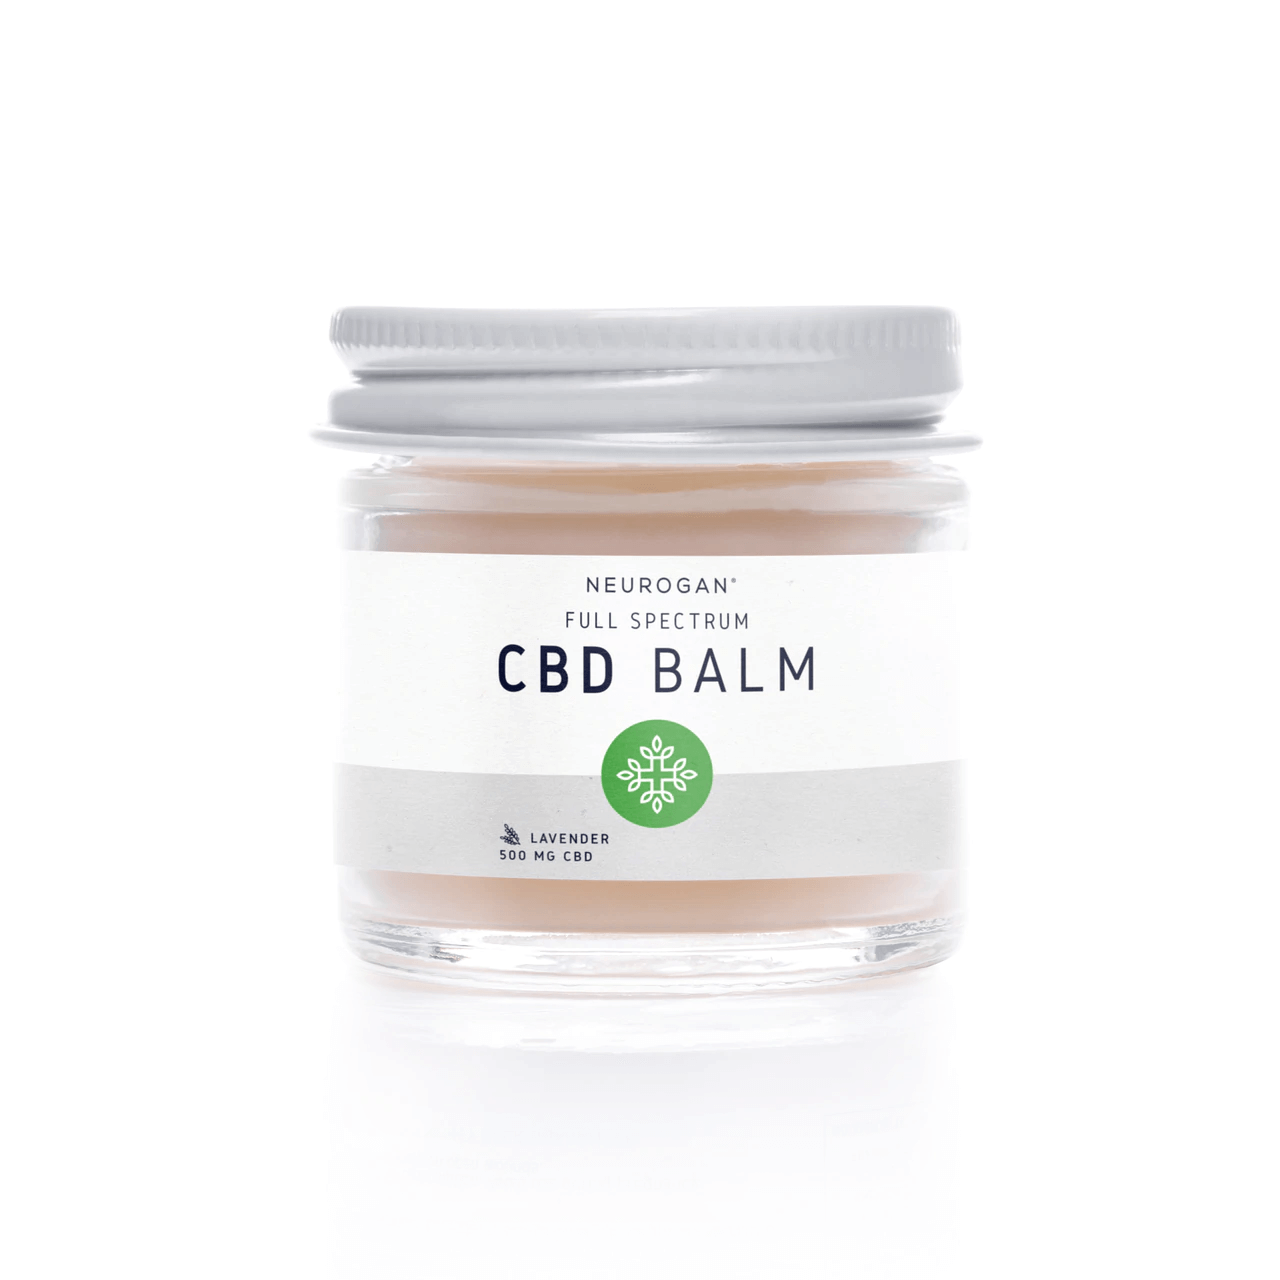 Full Spectrum CBD Balm 1 oz